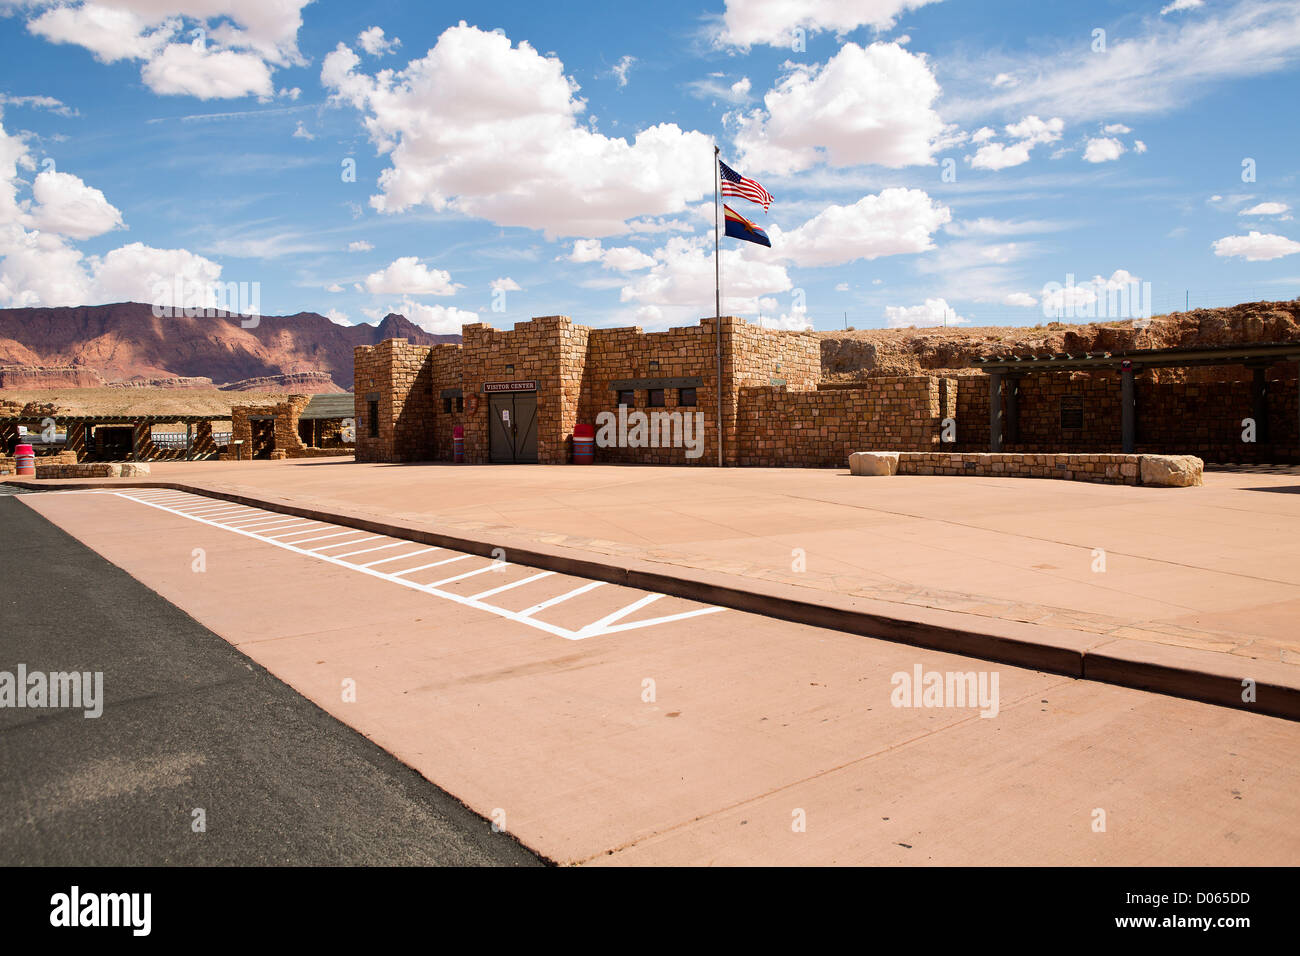 The visitor center at the historic navajo bridge over the colorado river on hightway 89A in Arizona. - Stock Image